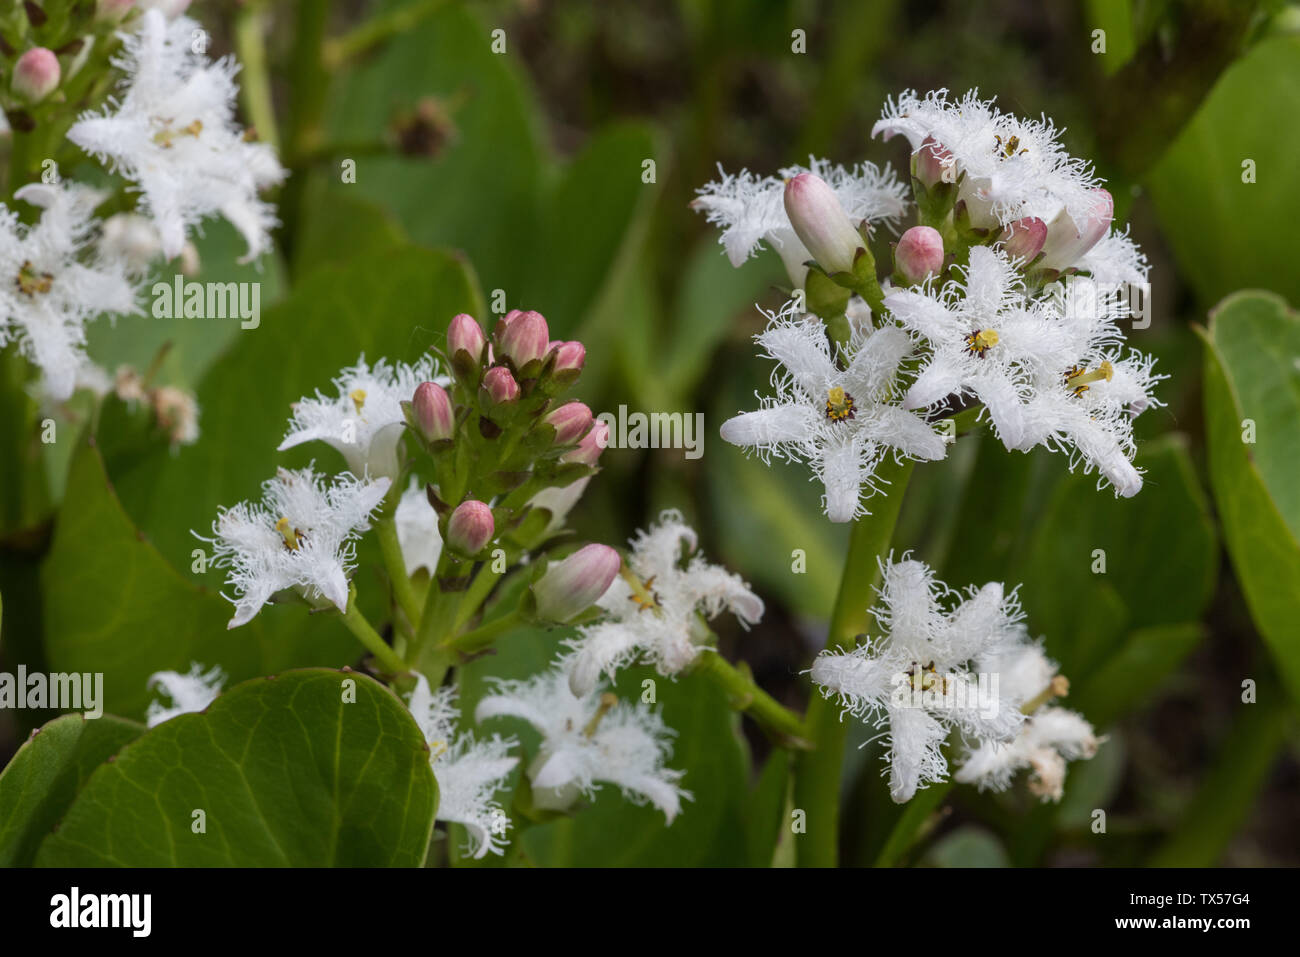 Bogbean Menyanthes trifoliata flowering along the edge of a pond - Stock Image